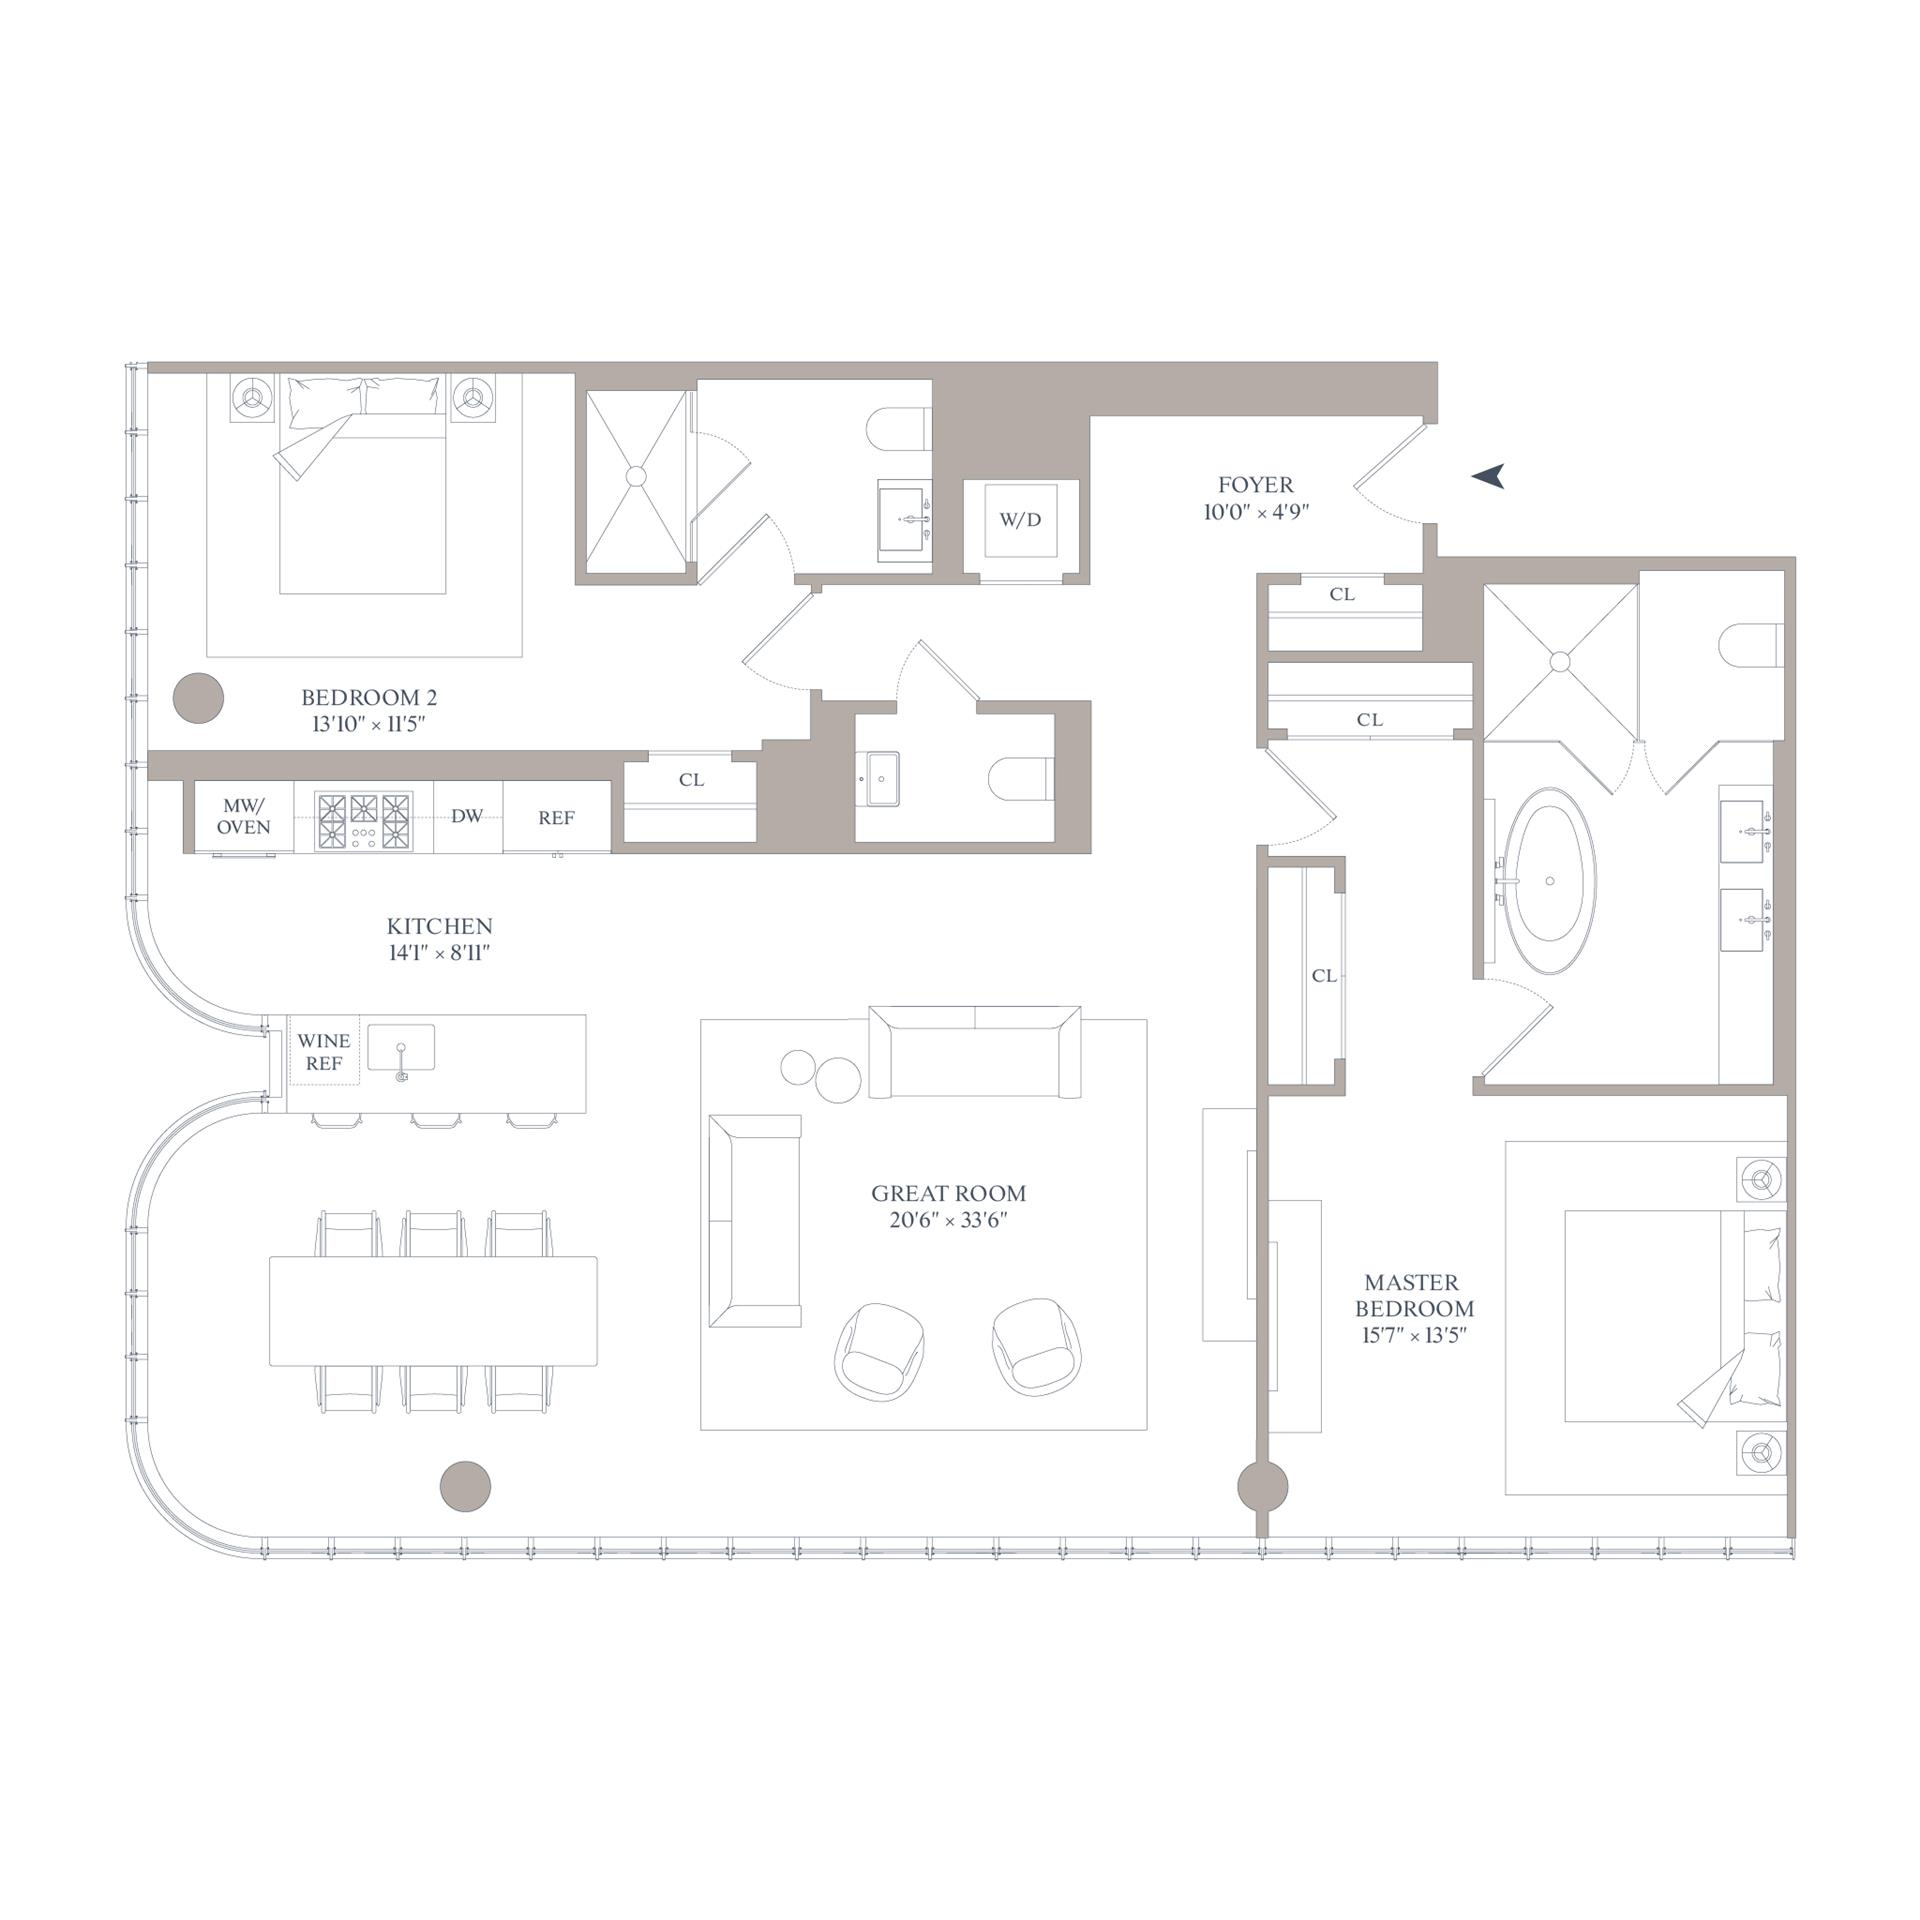 Floor plan of 565 Broome St, S7C - SoHo - Nolita, New York